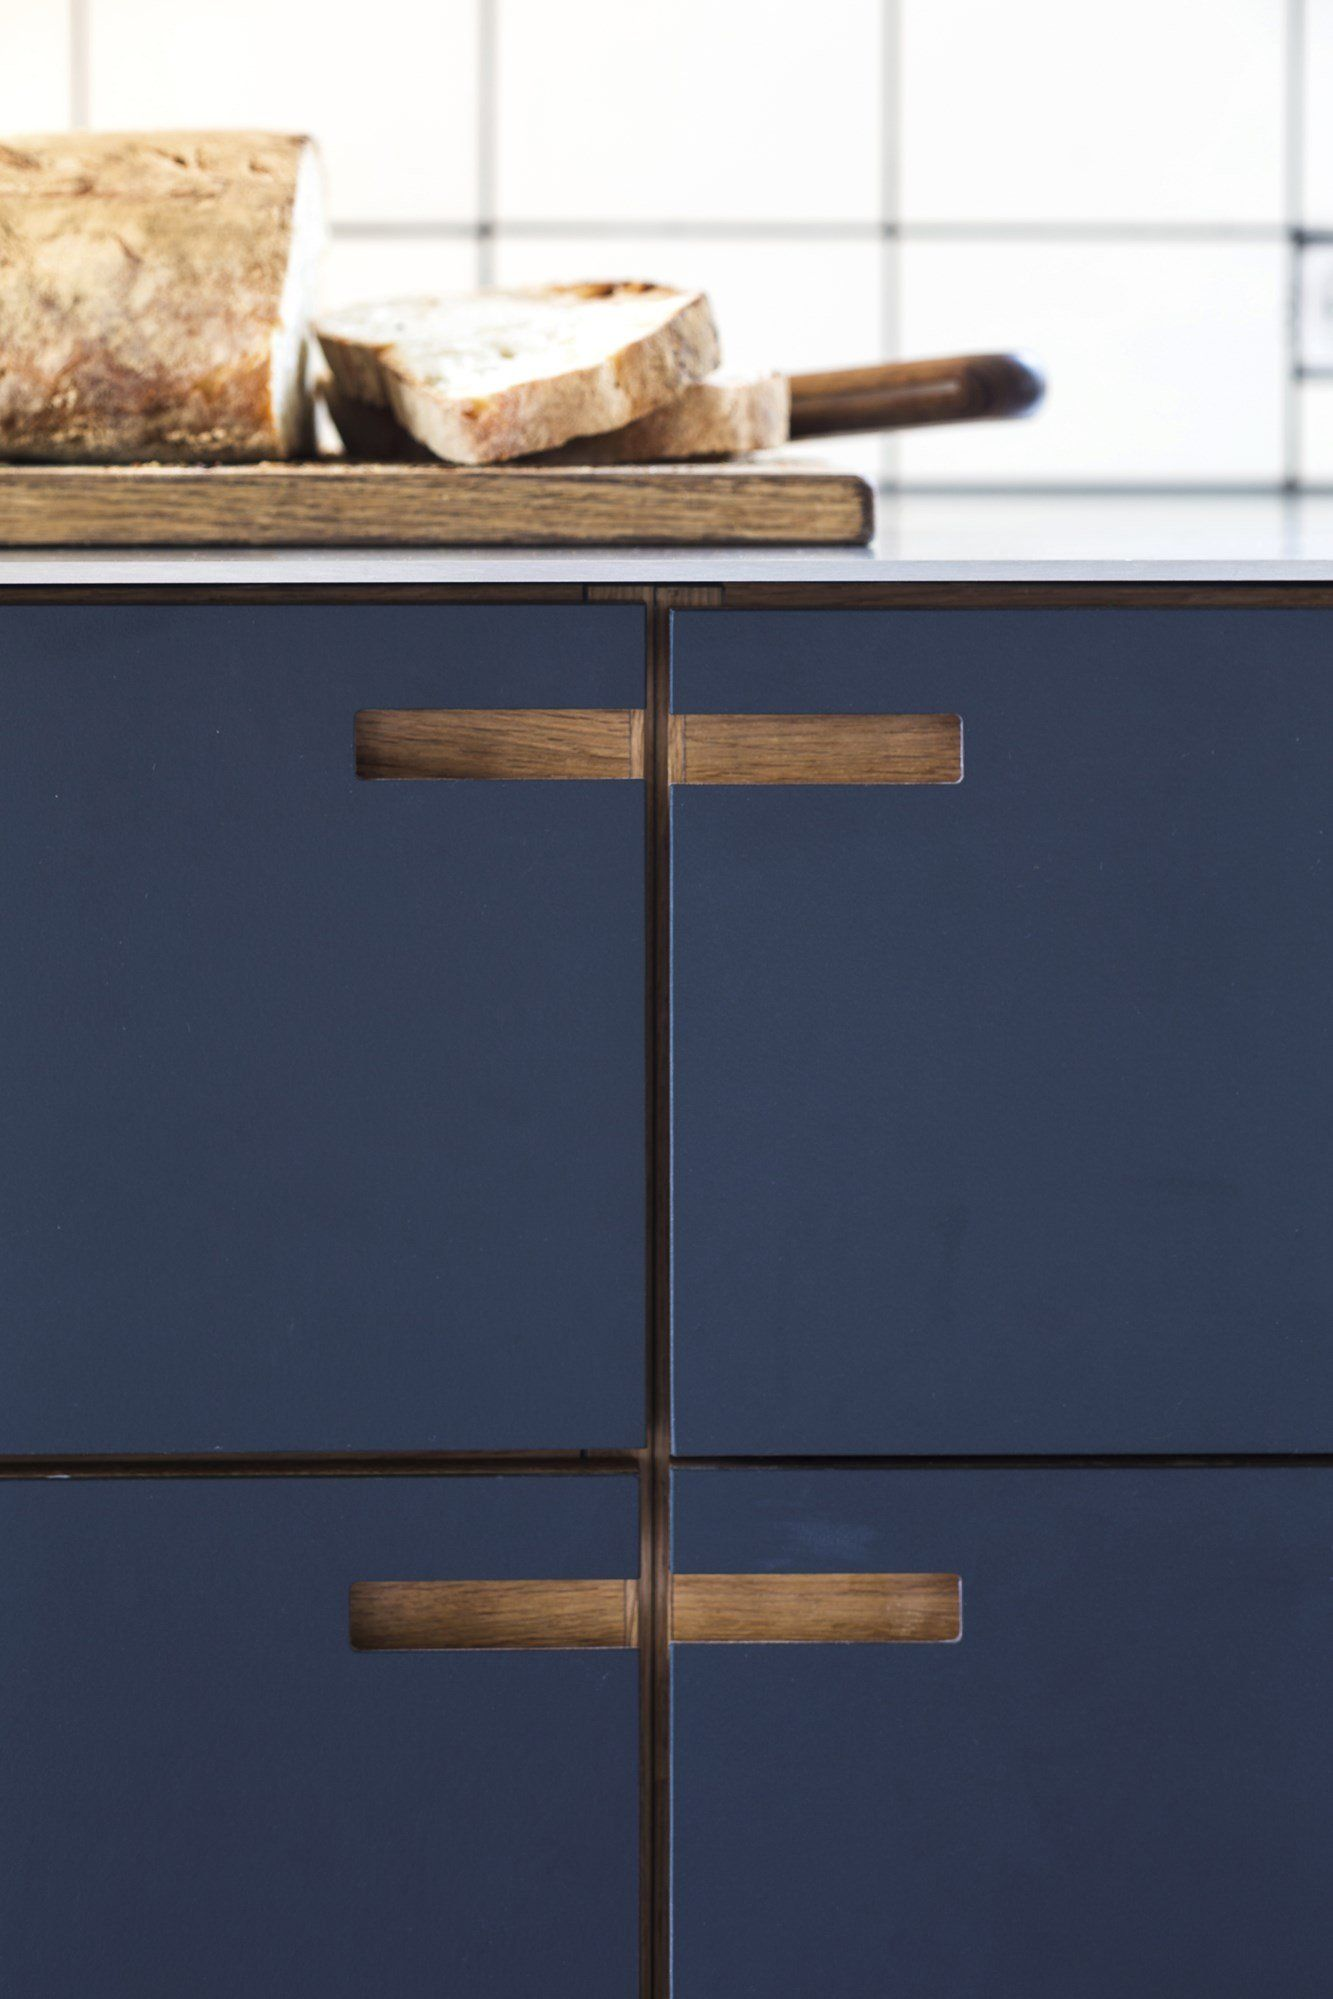 Kitchen Cabinet Drawer Fronts Love The Oak Cabinetry With Blue Painted Drawer Fronts And